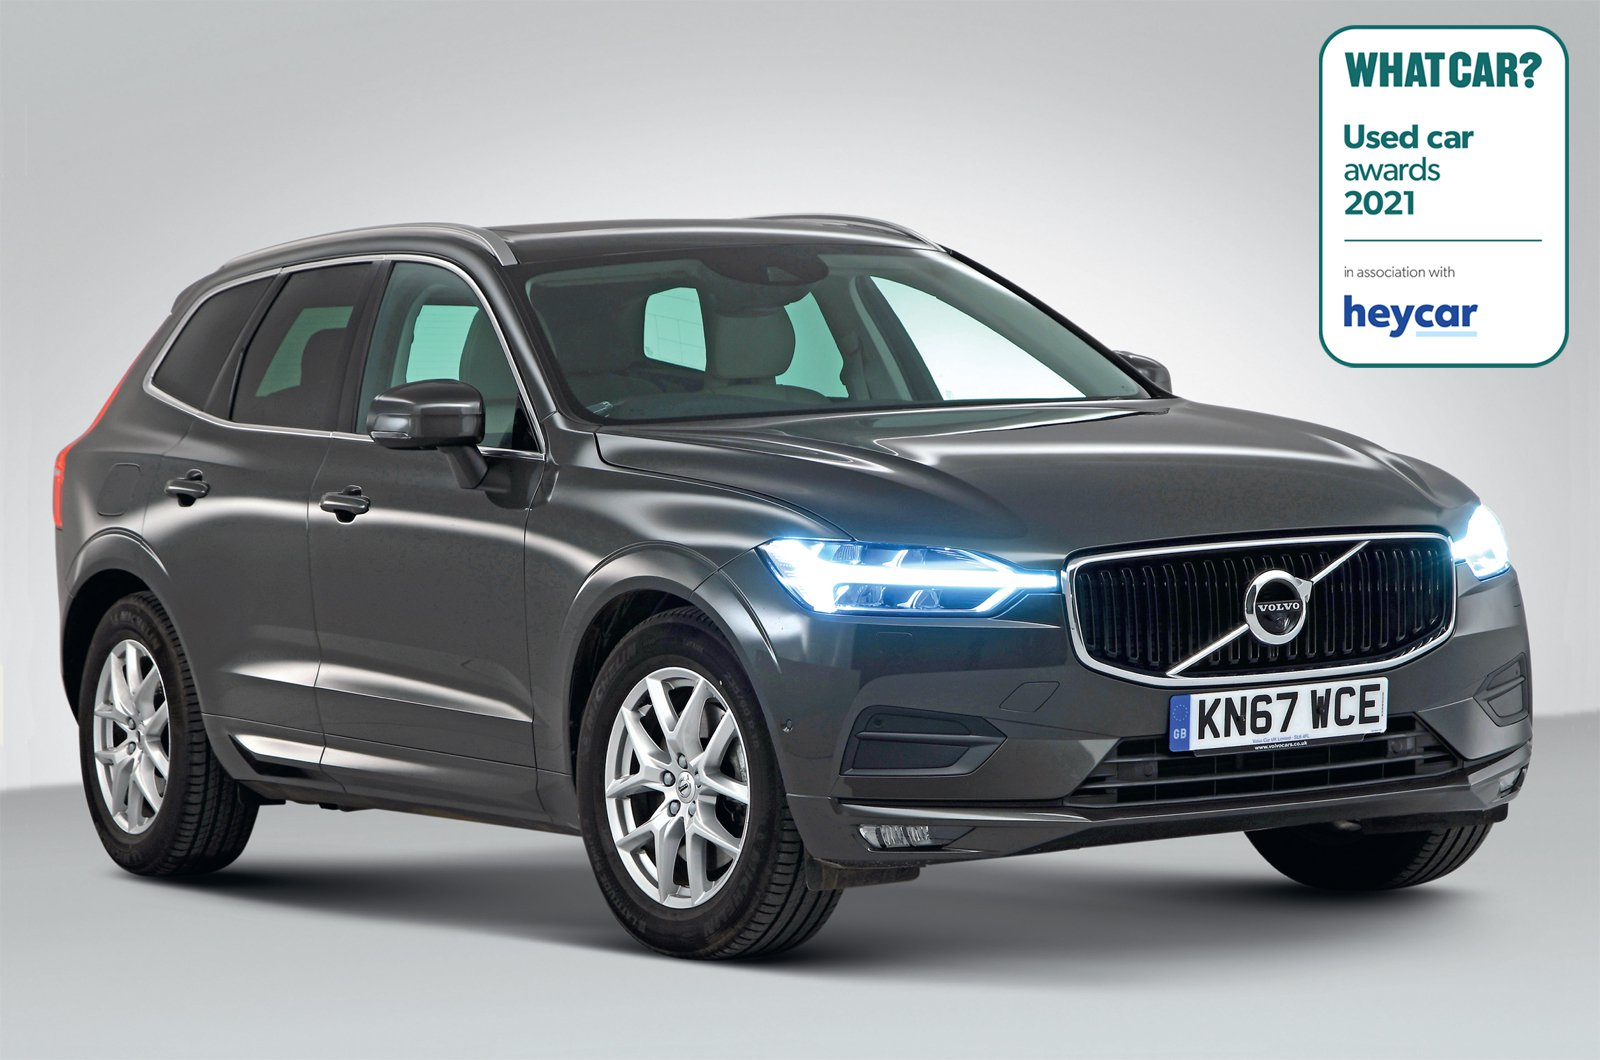 Used Car Awards 2021 - Volvo XC60